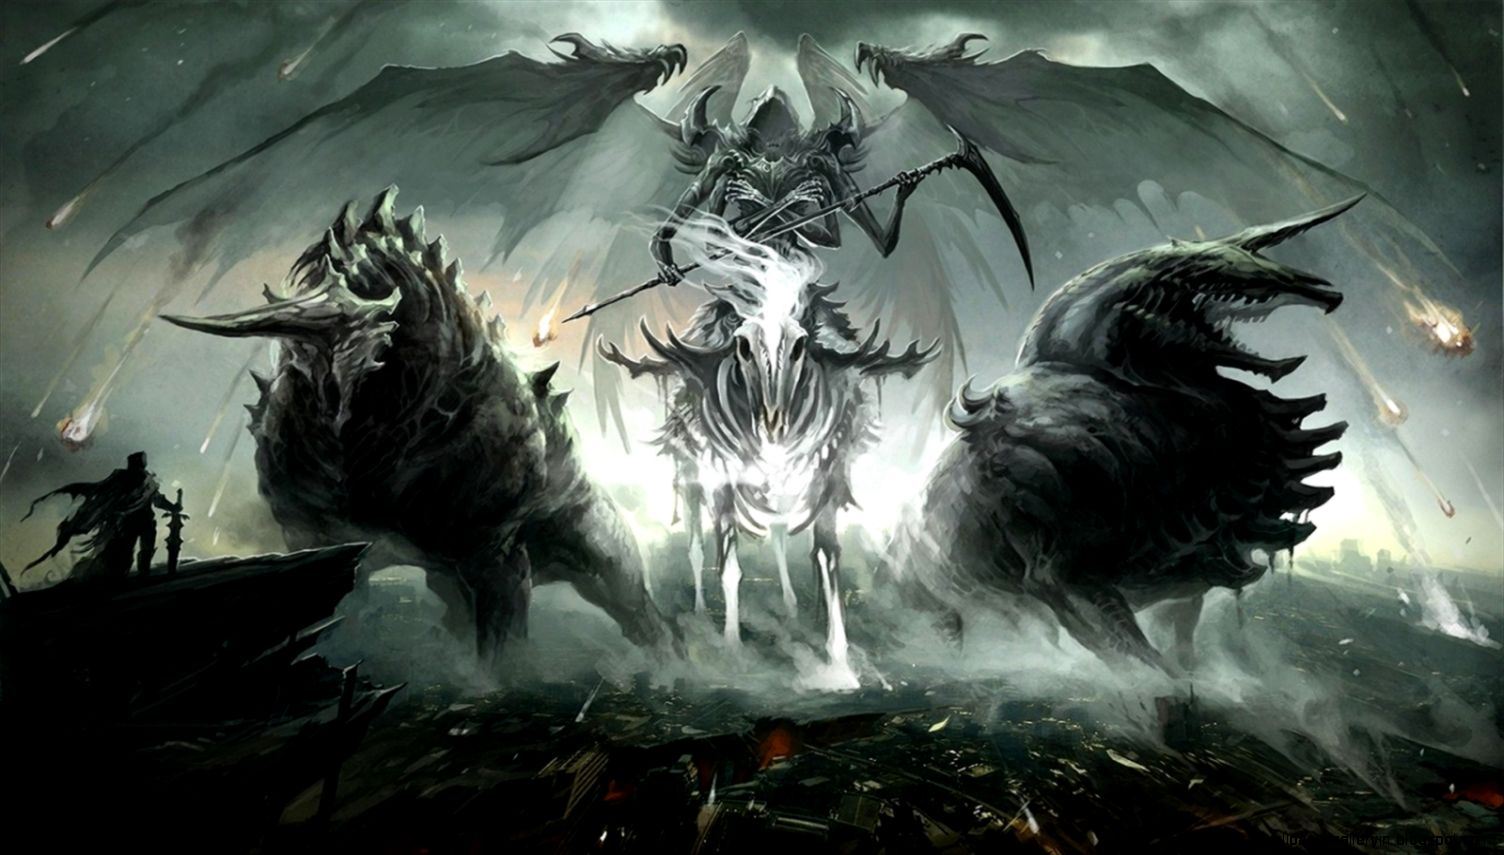 Horsemen Of Apocalypse Armageddon Beasts Creative Wallpaper